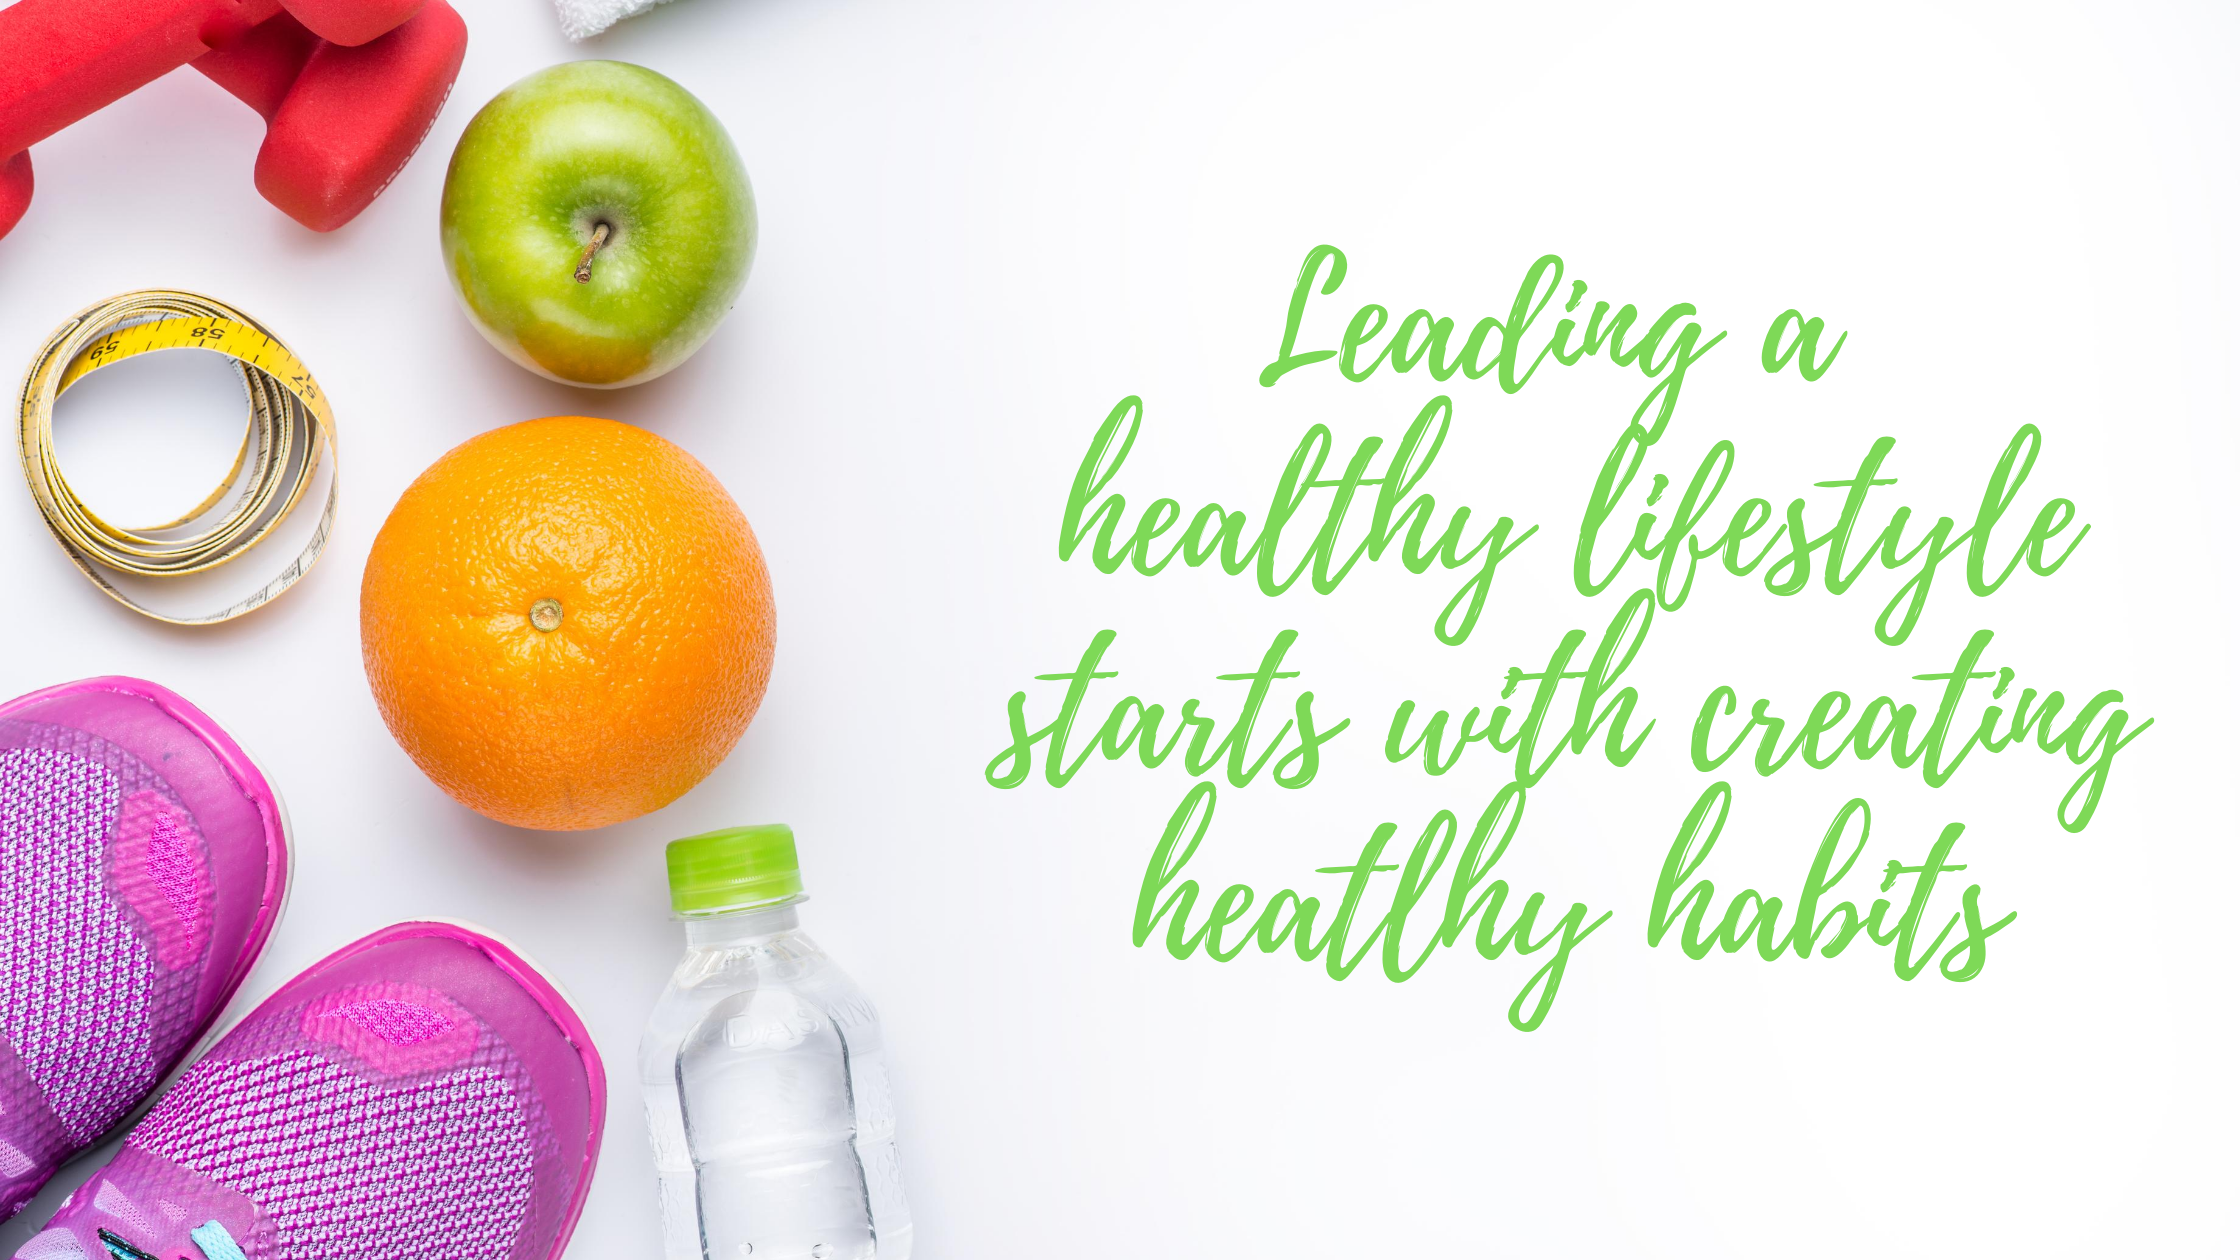 Why exercise and nutrition mean better health and wellbeing